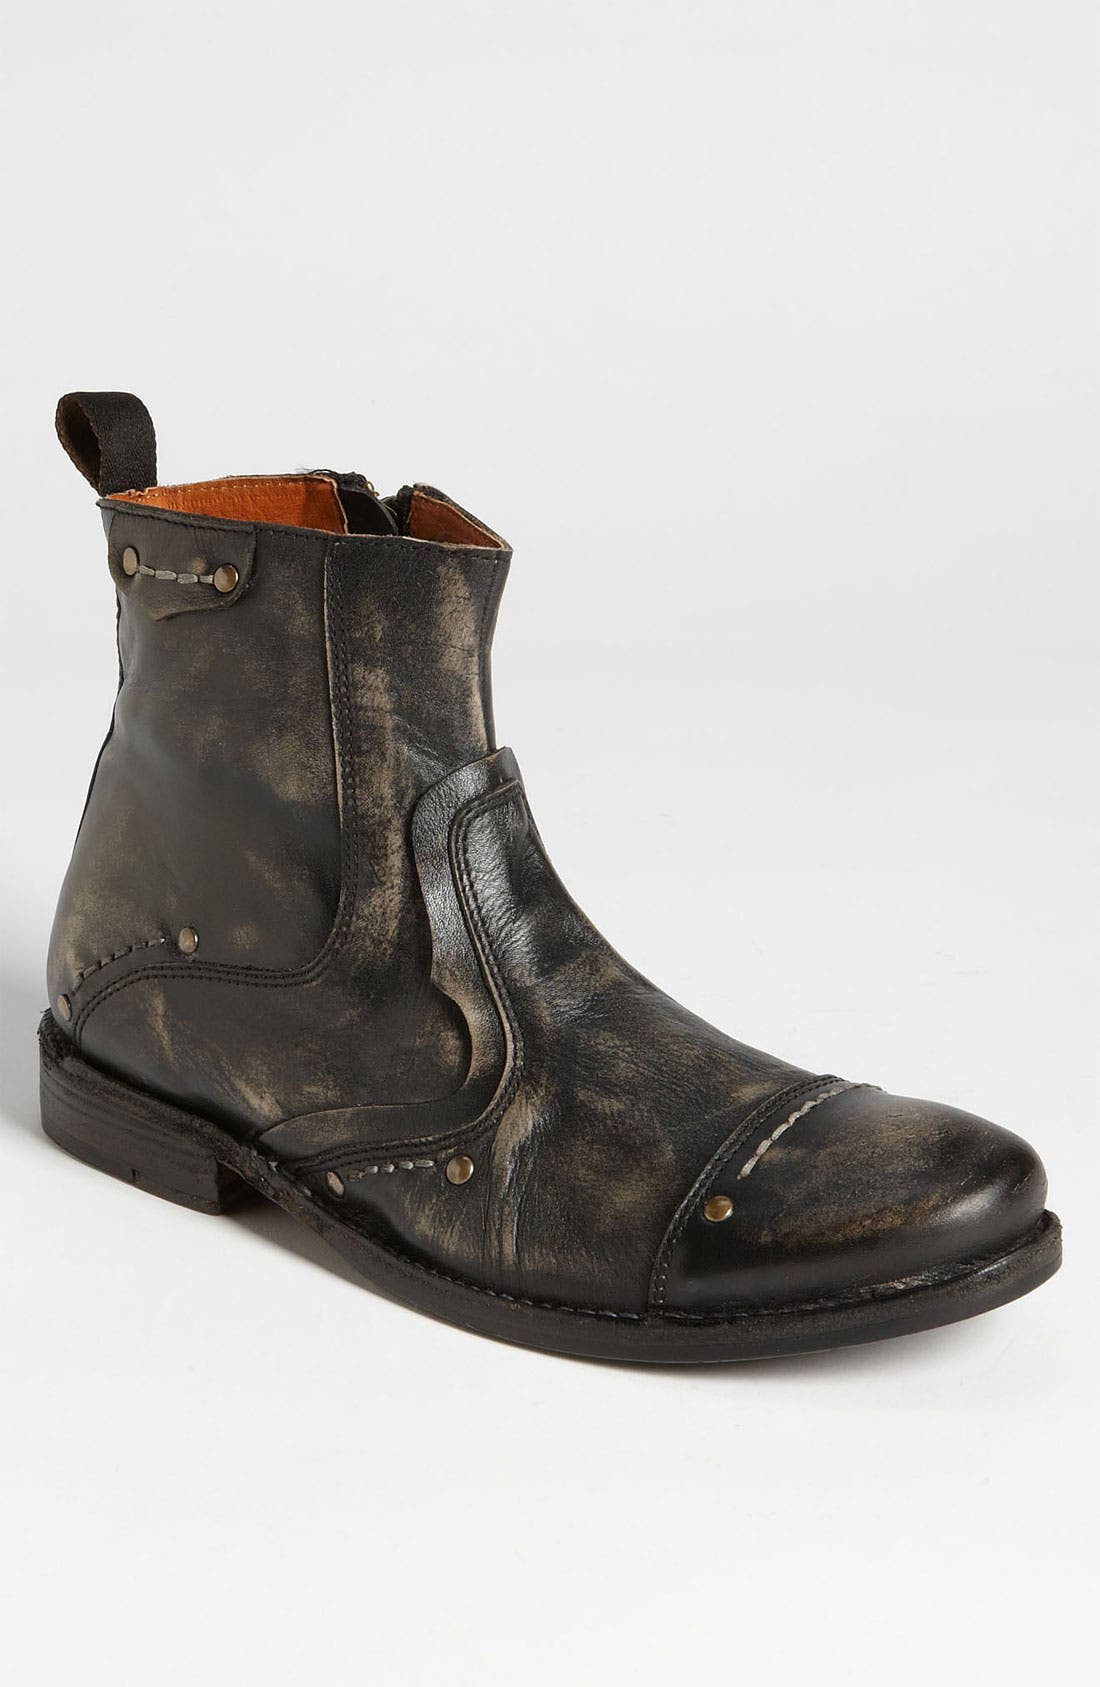 Alternate Image 1 Selected - Bed Stu 'Centrale' Boot (Online Only)